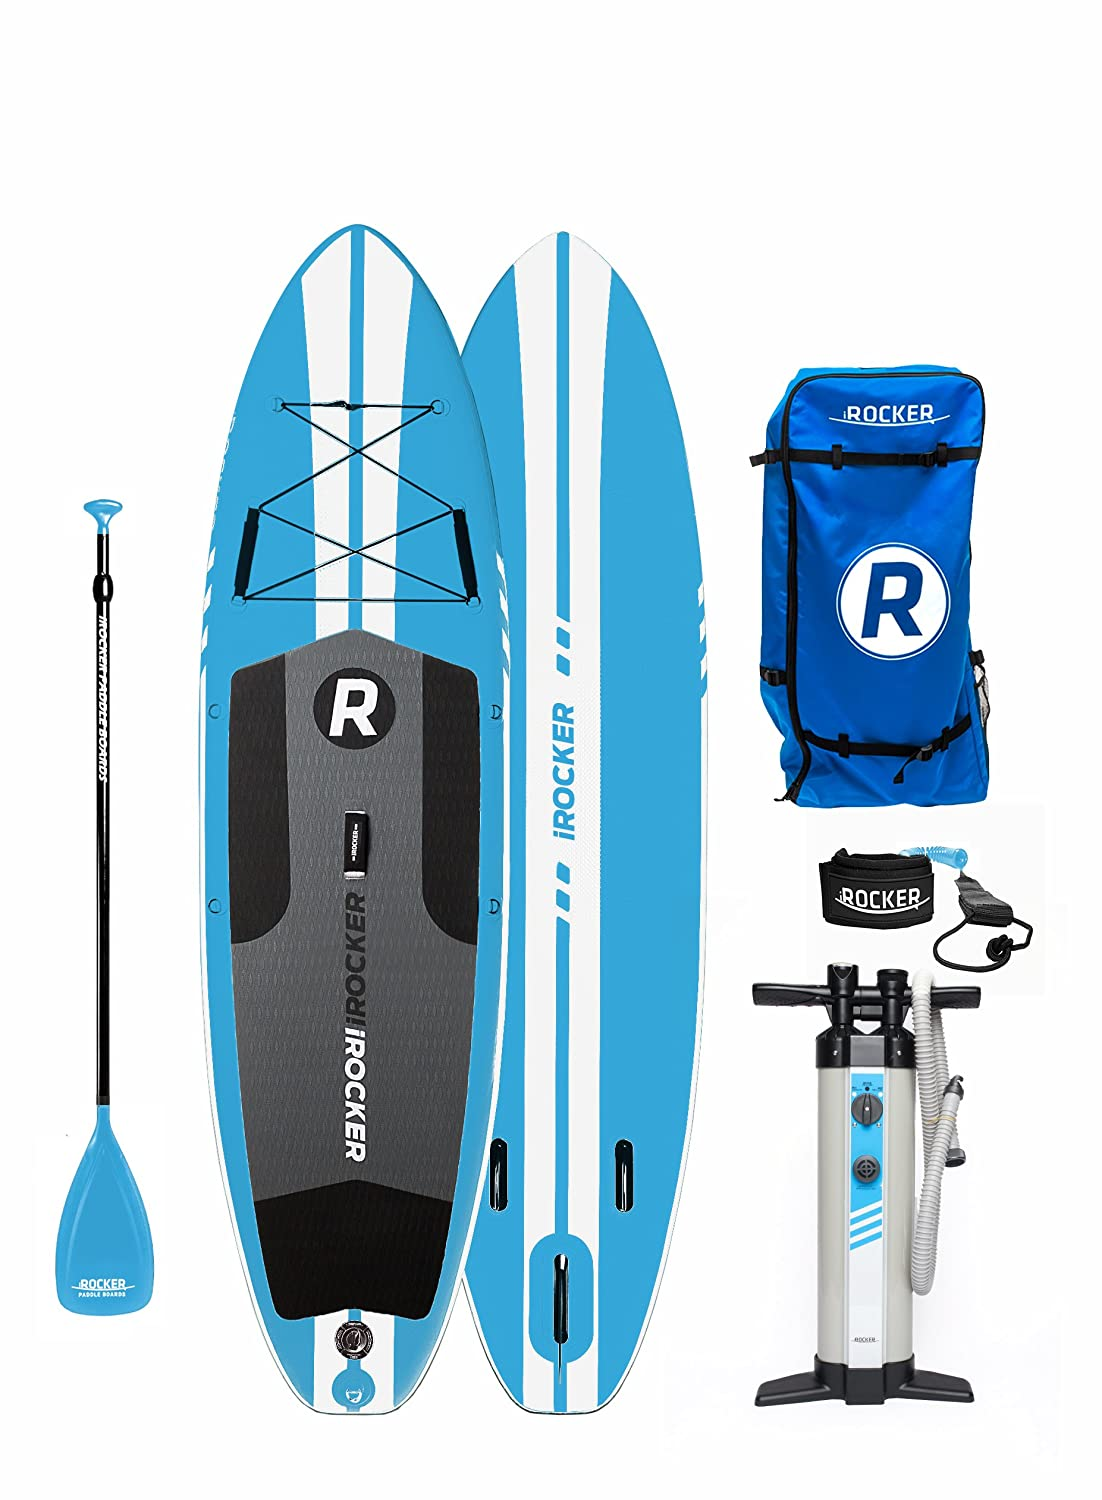 Tabla de paddle surf hinchable iRocker All-Around de 304 cm de largo x 81 cm de ancho x 15 cm de espesor, bolsa SUP, Blue 2018: Amazon.es: Deportes y aire ...